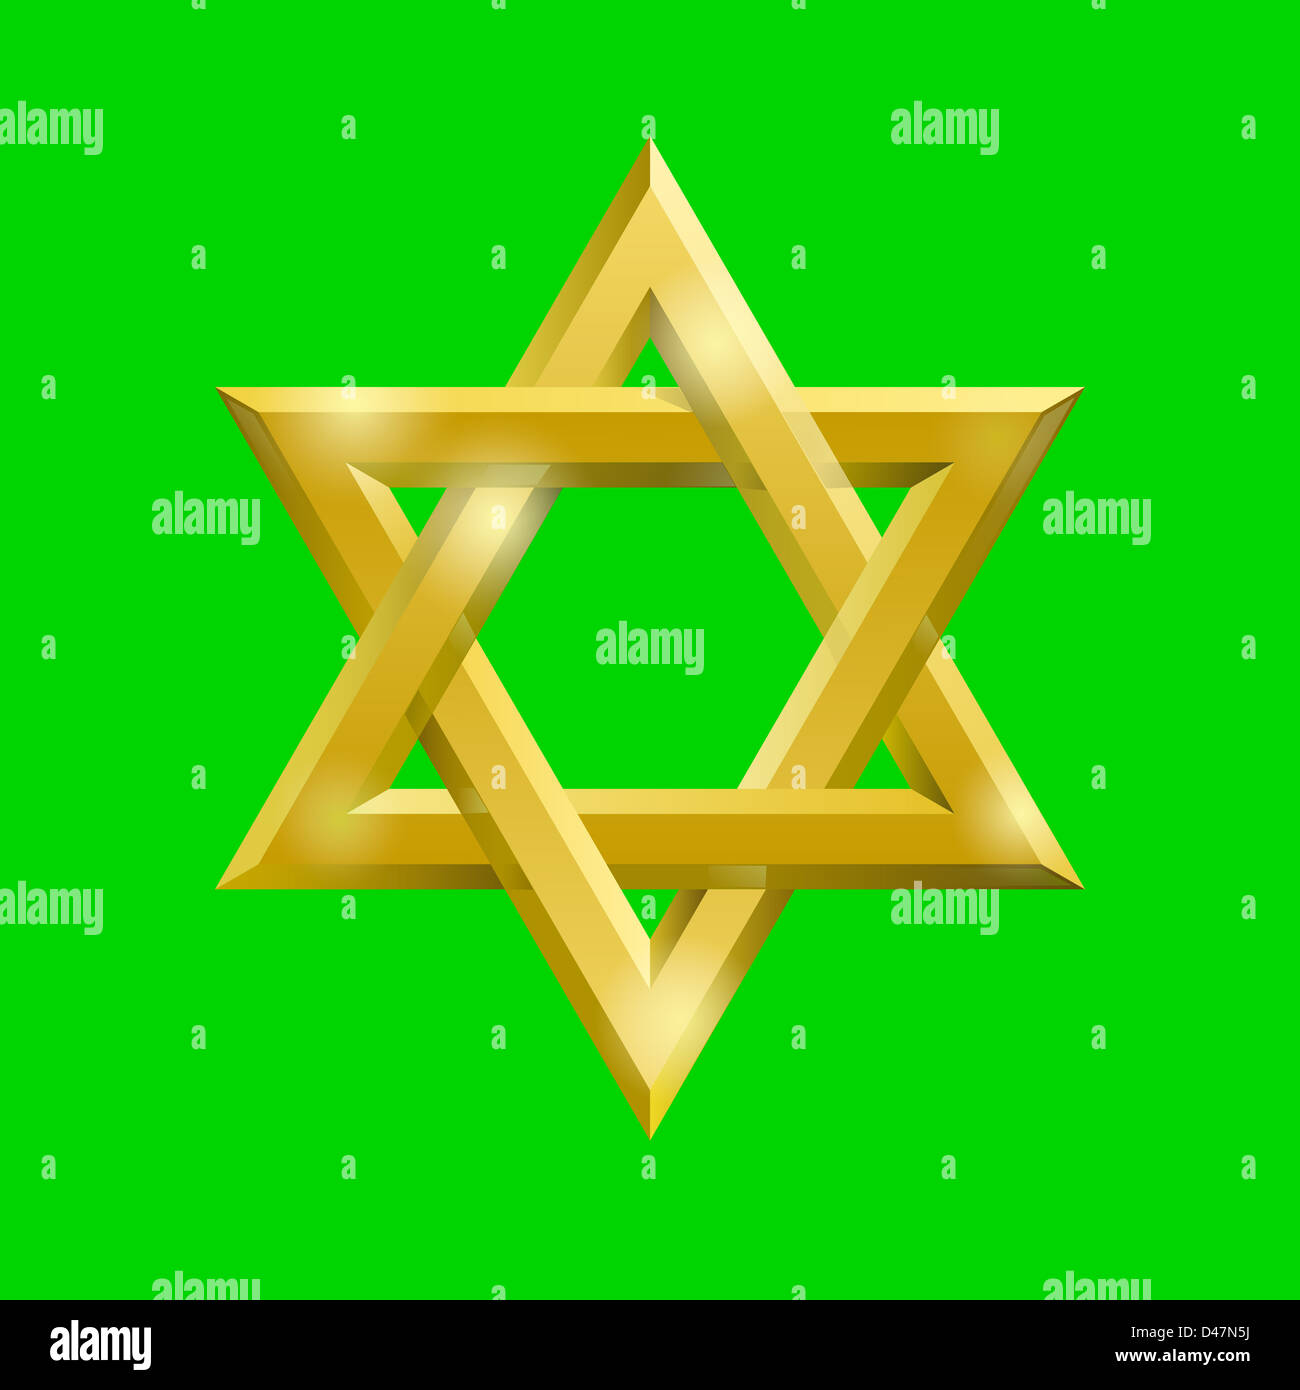 Golden David star on the  green screen, removable chroma key  background - Stock Image